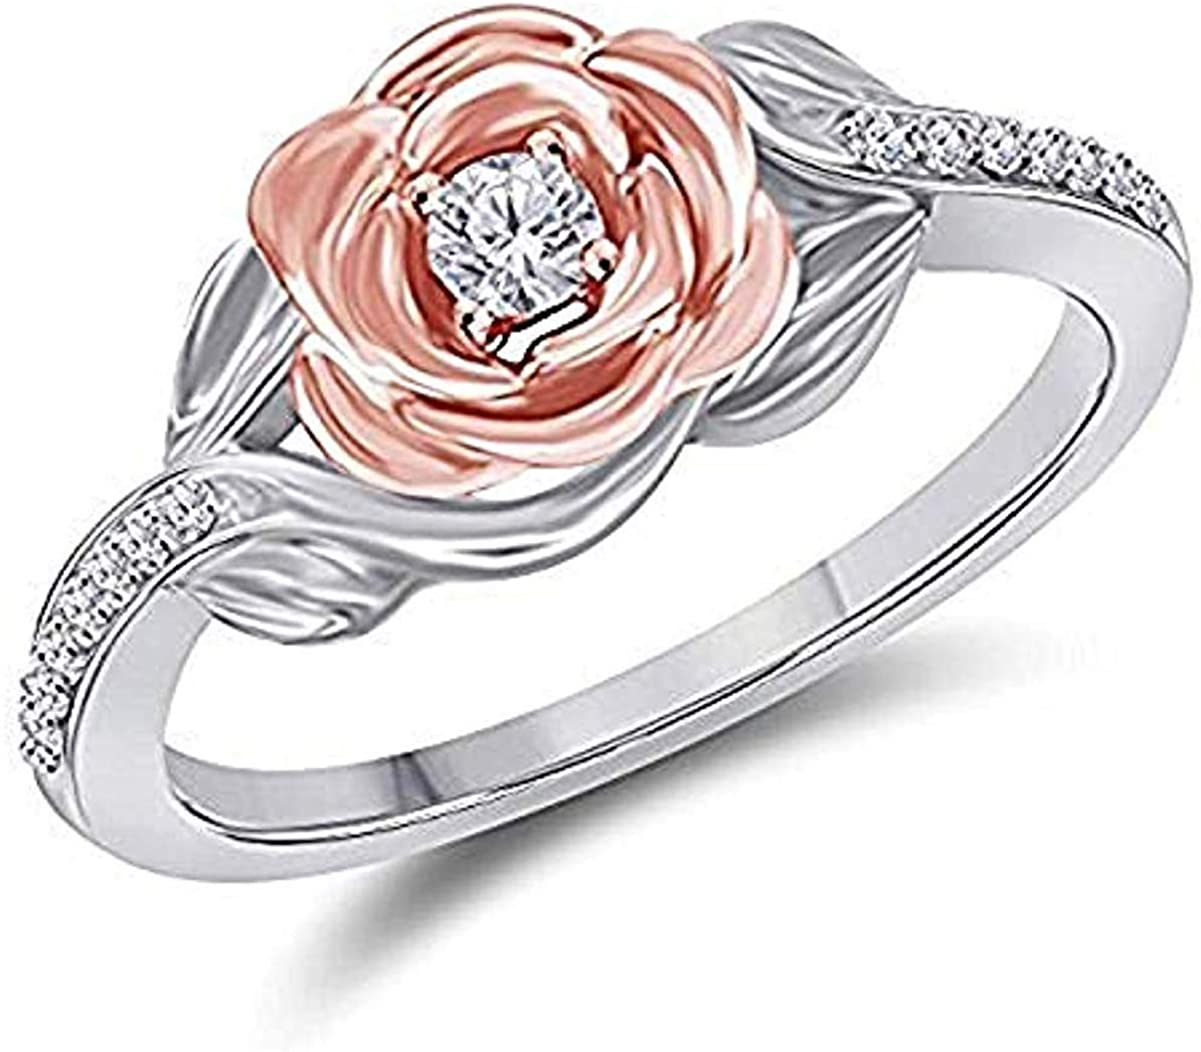 Lovely 0.35 ctw Belles 14k Two Tone Gold Over .925 Sterling Silver Cubic Zirconia Fashion Ring-Flower Ring